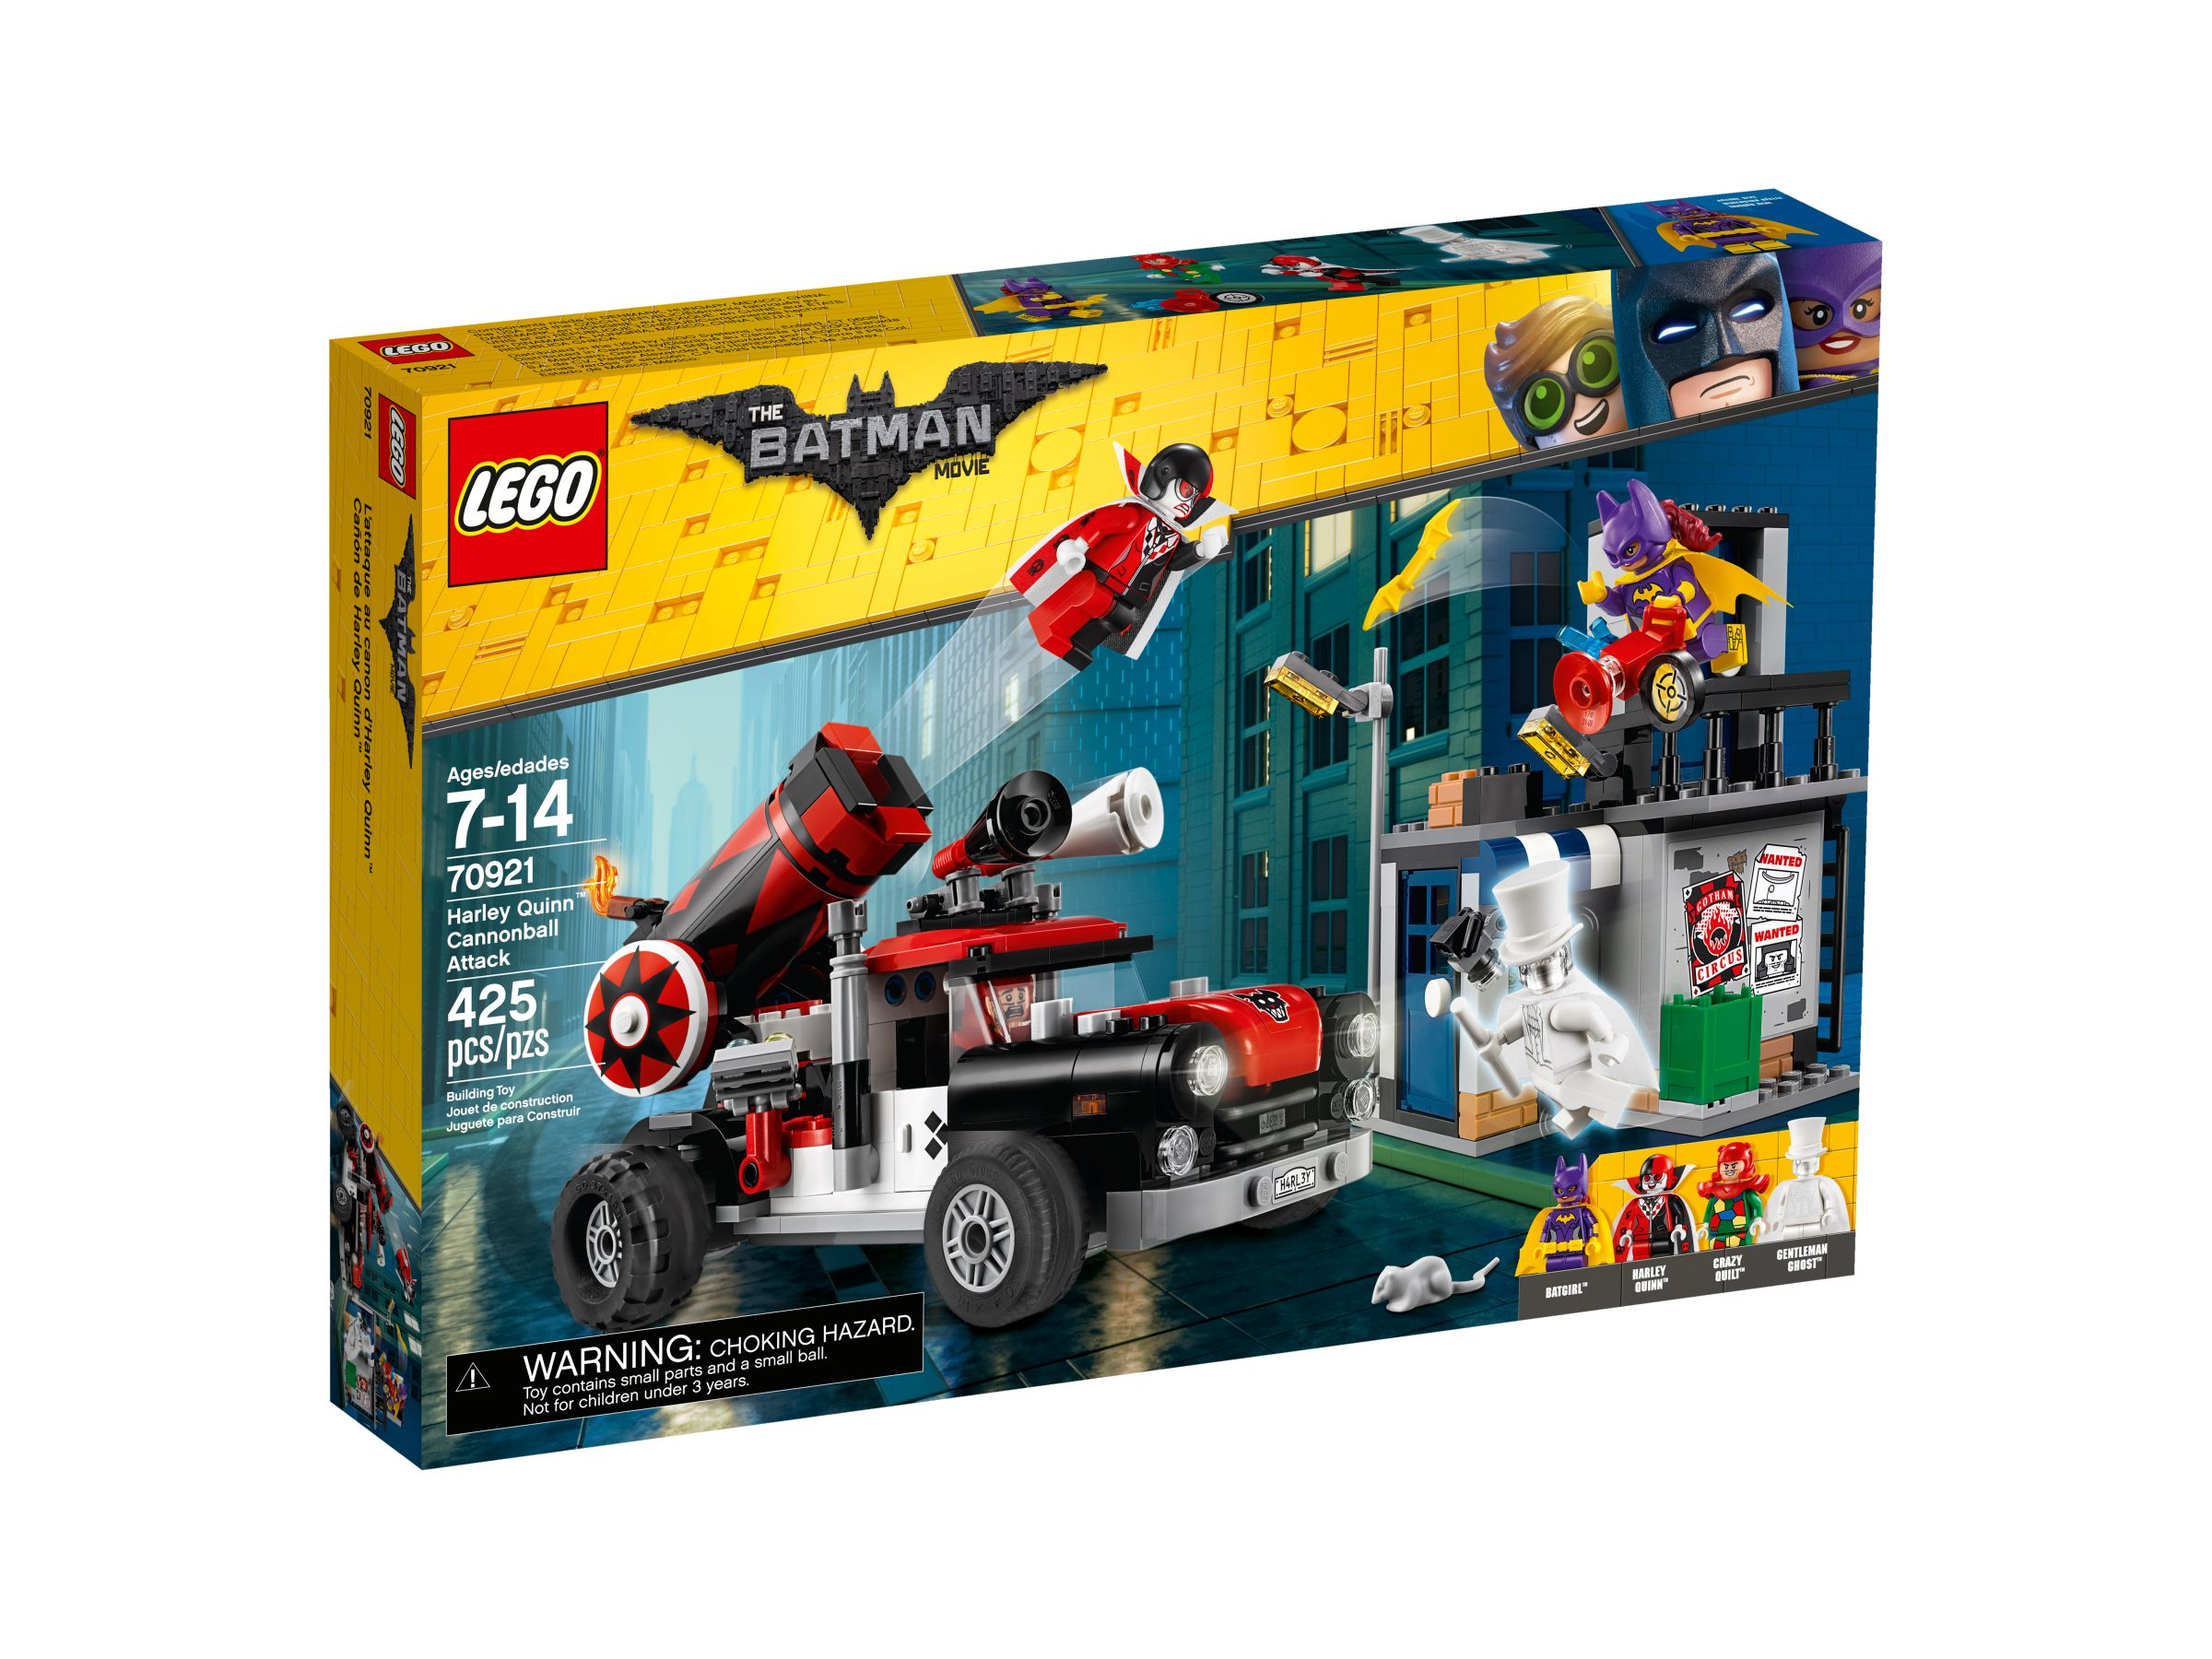 LEGO The LEGO Batman Movie 70921 Harley Quinn Kanonenkugelattacke LEGO_70921_alt1.jpg